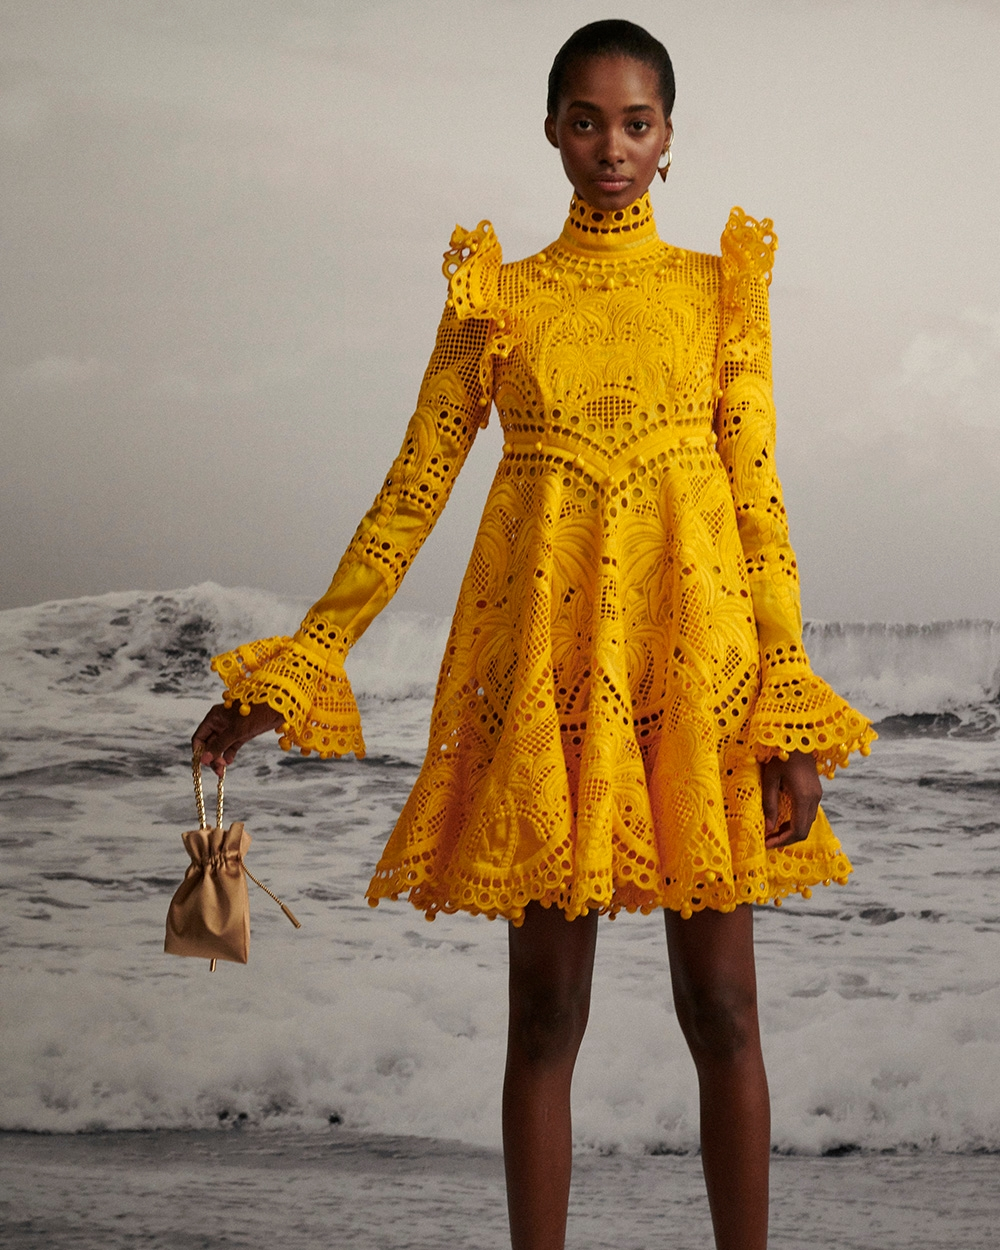 BEHIND THE SCENES AT SPRING 2020 NEW YORK FASHION WEEK ZIMMERMANN SHOW